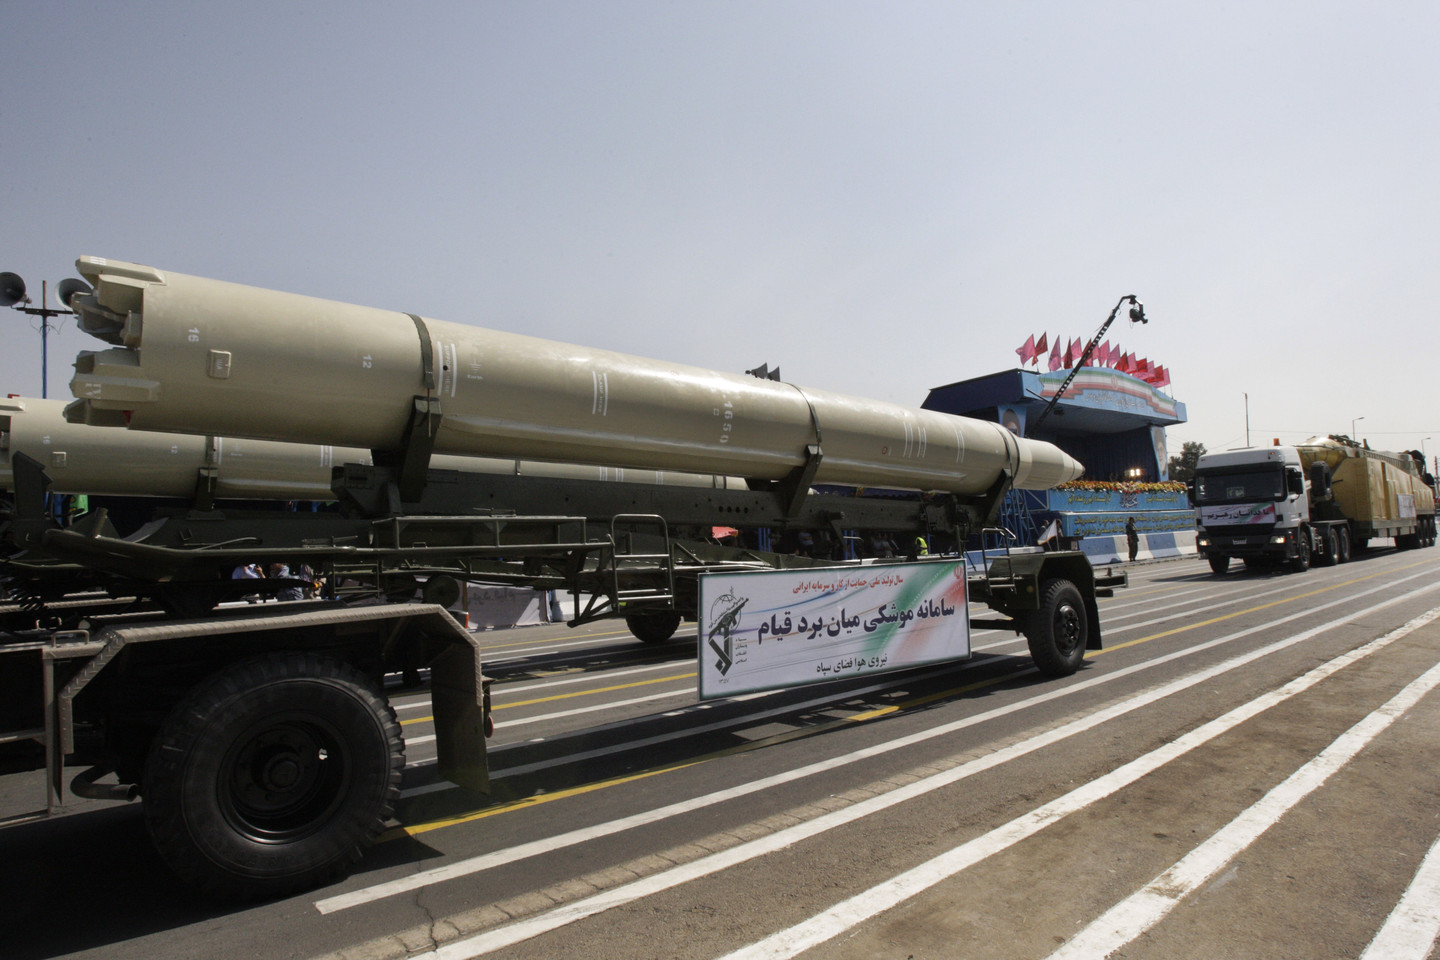 What's Driving Iran to Build a Better Missile